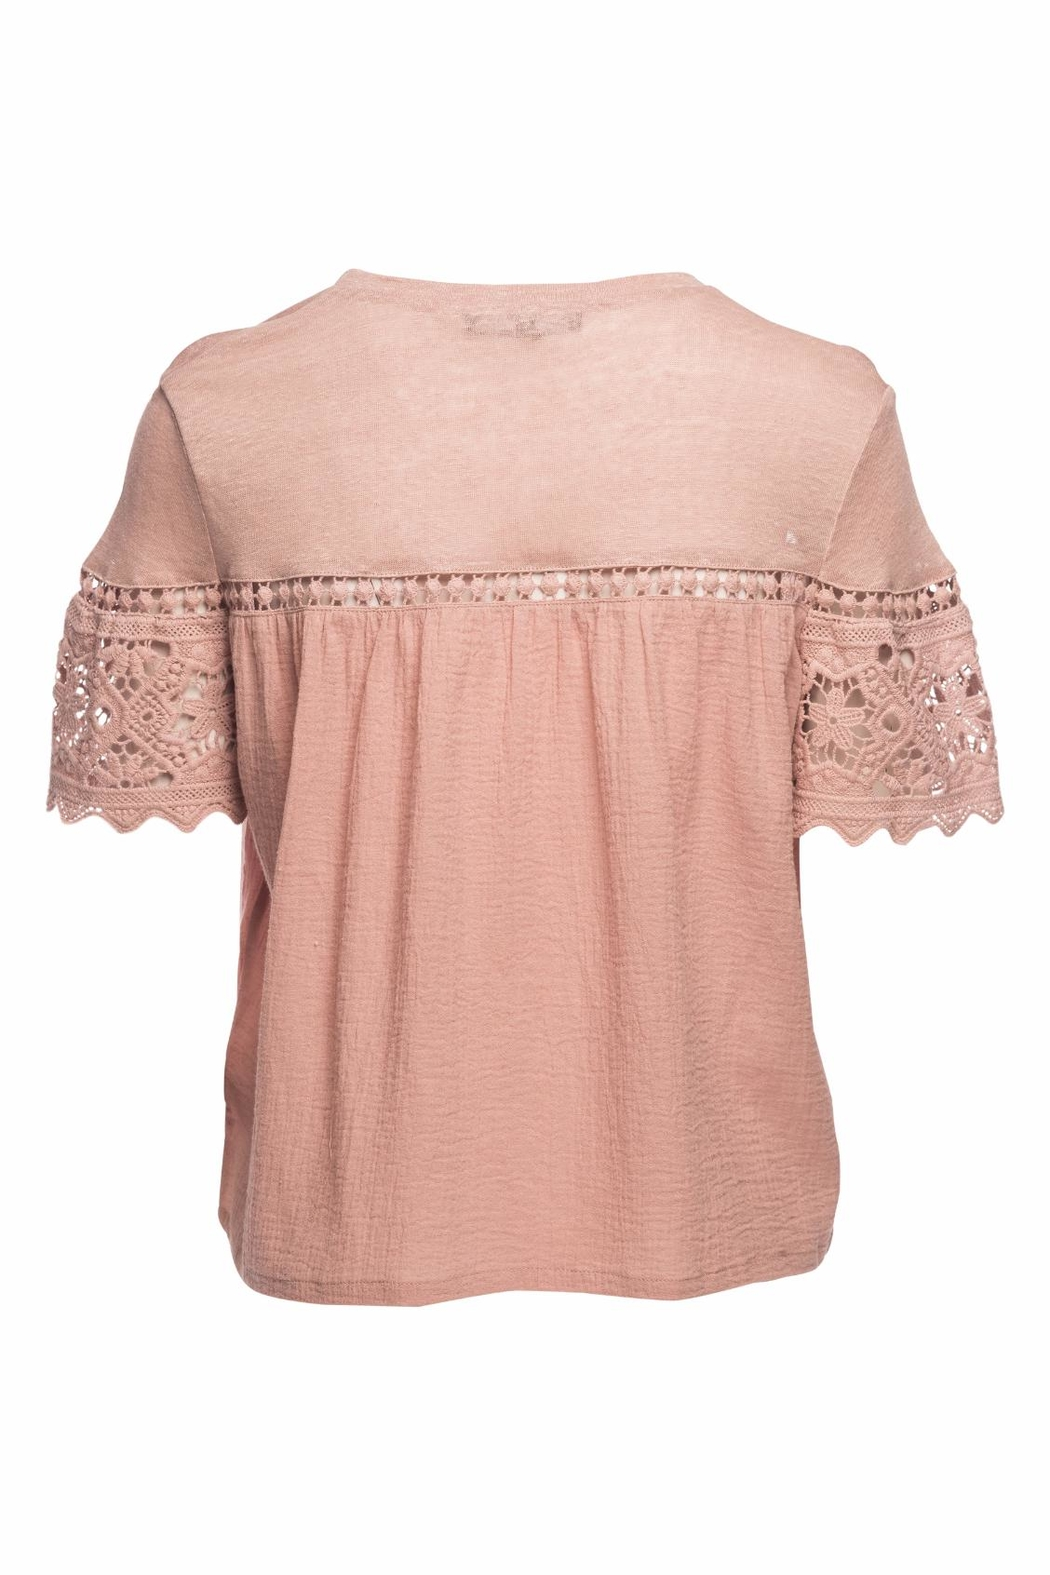 Generation Love  Fran Gauze Lace Top - Front Full Image